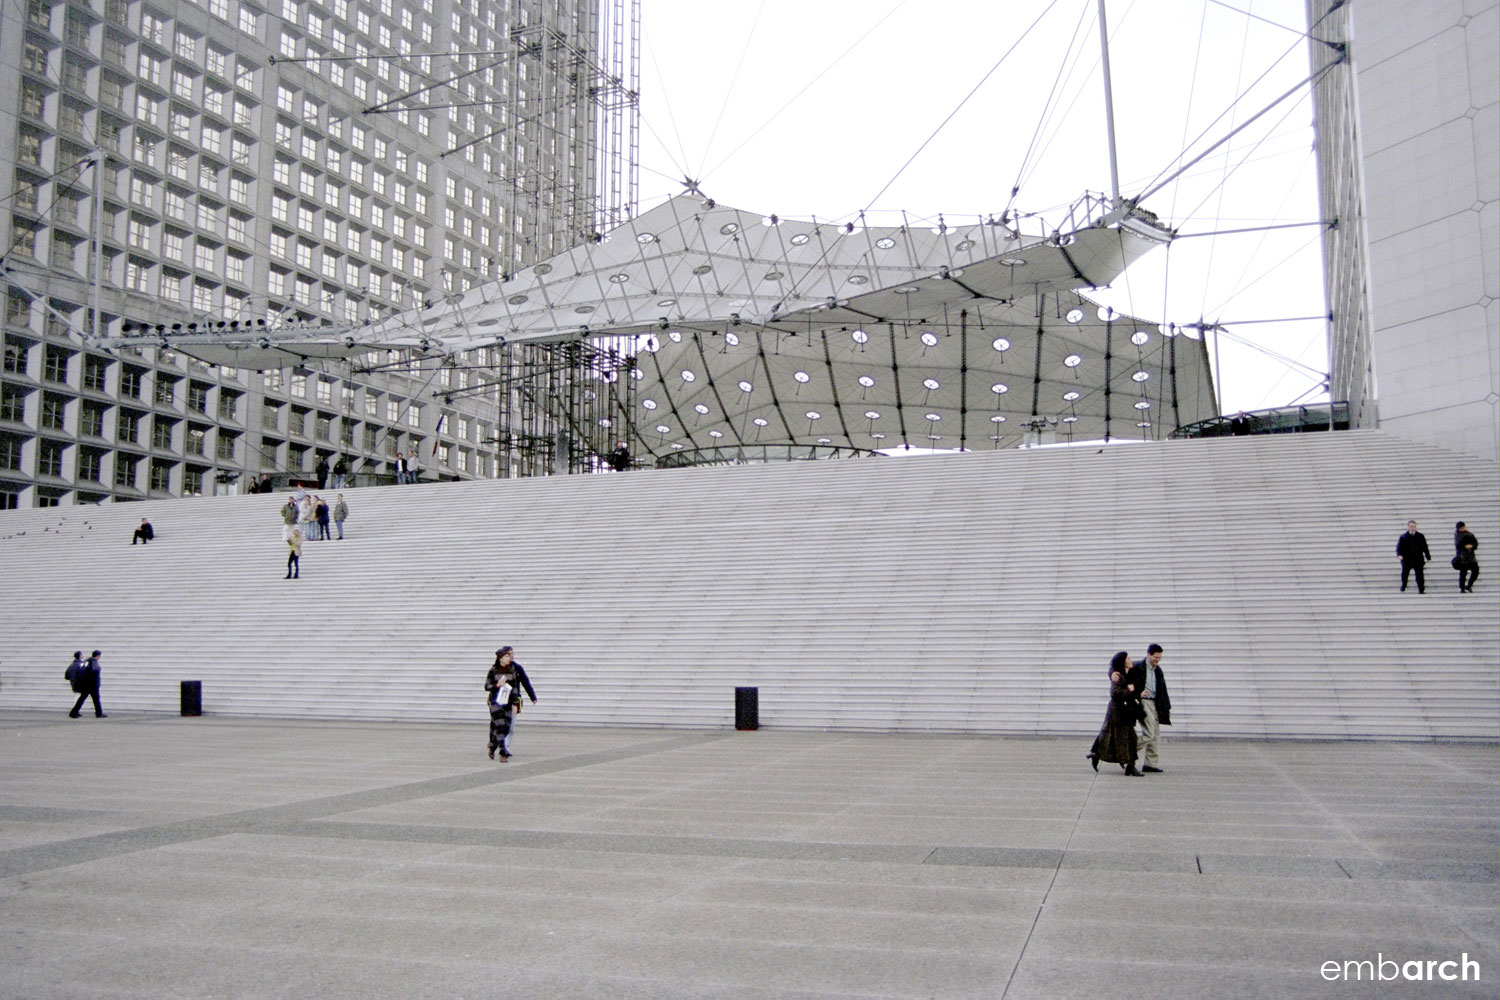 La Grande Arche de la Défense - view of the Grande Arche plinth base.